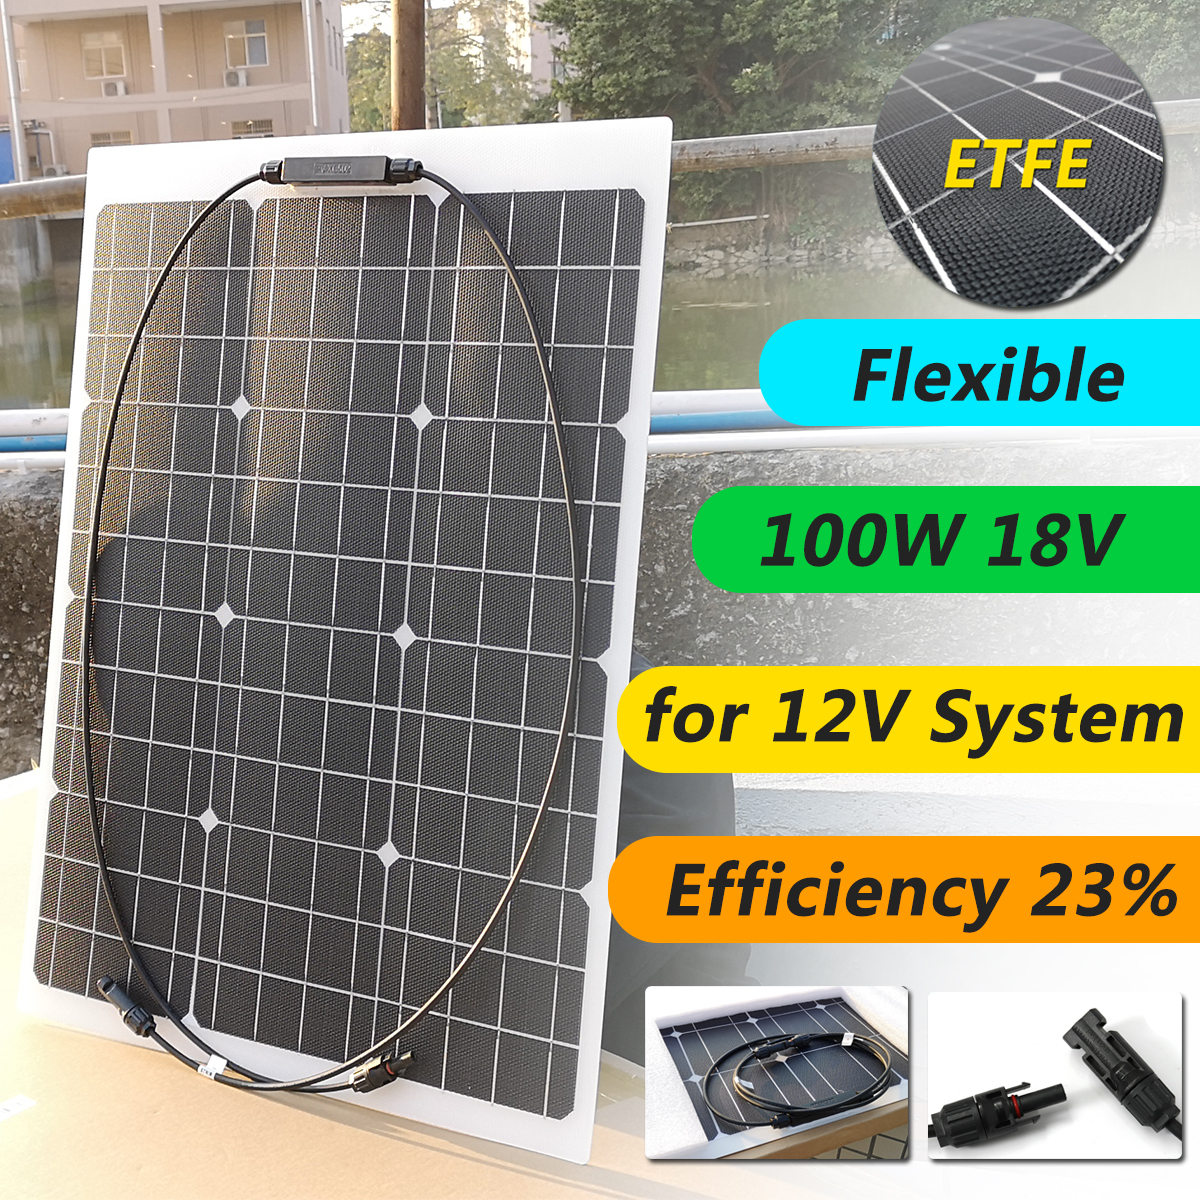 Flexible Solar Panel 18V 50W Solar Charger For 12V Car Battery ETFE Monocrystalline Cells For Hause,boat,roof with MC4 CableFlexible Solar Panel 18V 50W Solar Charger For 12V Car Battery ETFE Monocrystalline Cells For Hause,boat,roof with MC4 Cable